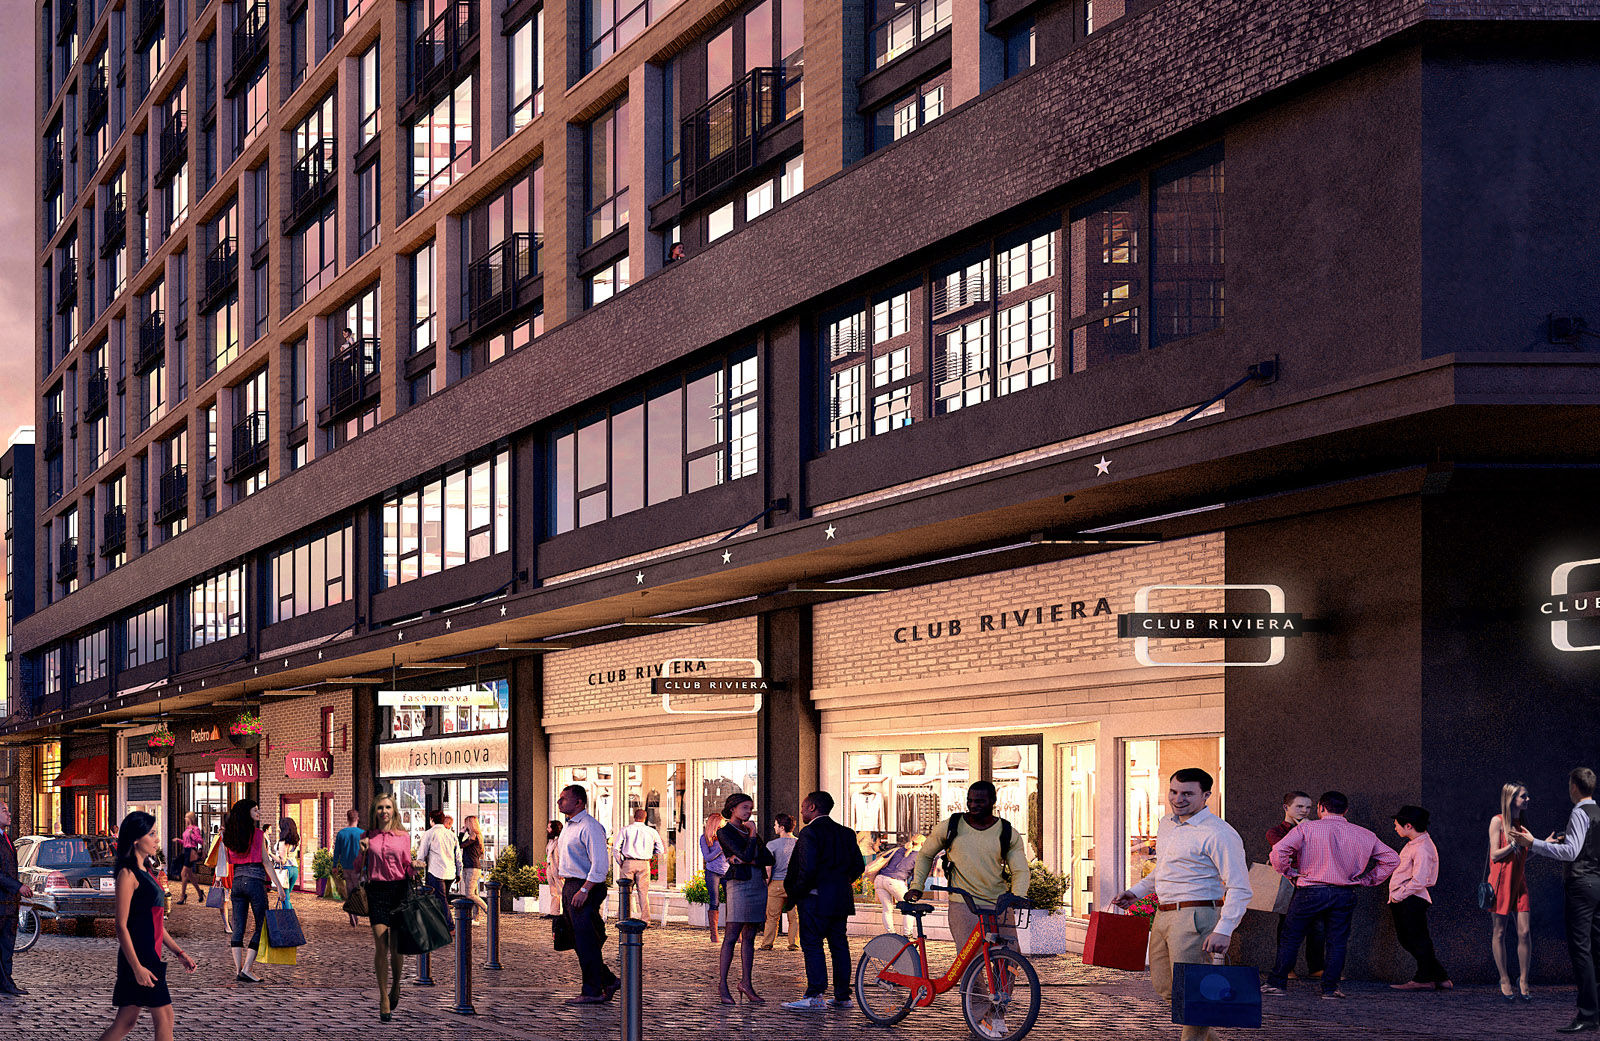 This artists rendering shows what District Square, lined with retail shops, will look like. Shopping options will run the gamut from services like dry cleaners and pharmacies for the nearly 2,000 residents who will live there, to boutiques and specialty stores like a French furniture stop. (Courtesy PN Hoffman)